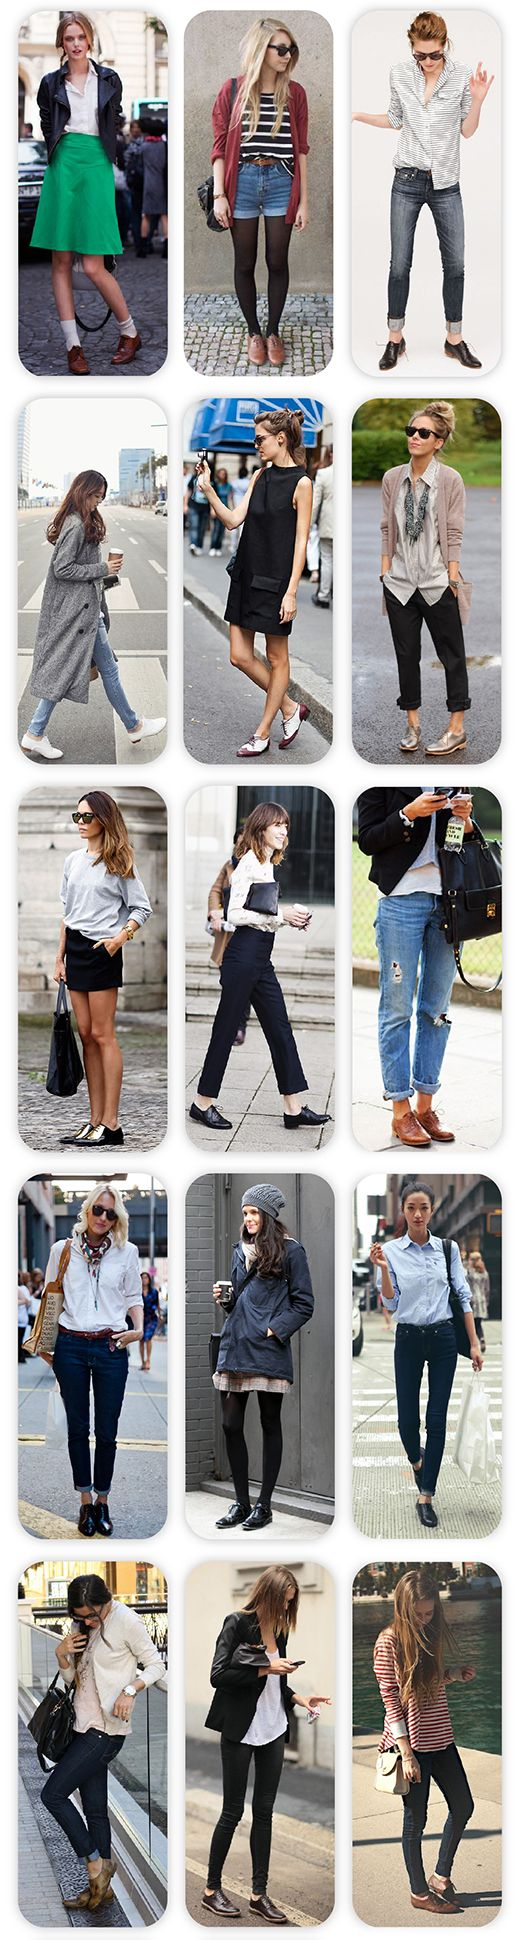 Fashion Trend: Oxford Παπούτσια / Fashion Trend: Oxford Shoes